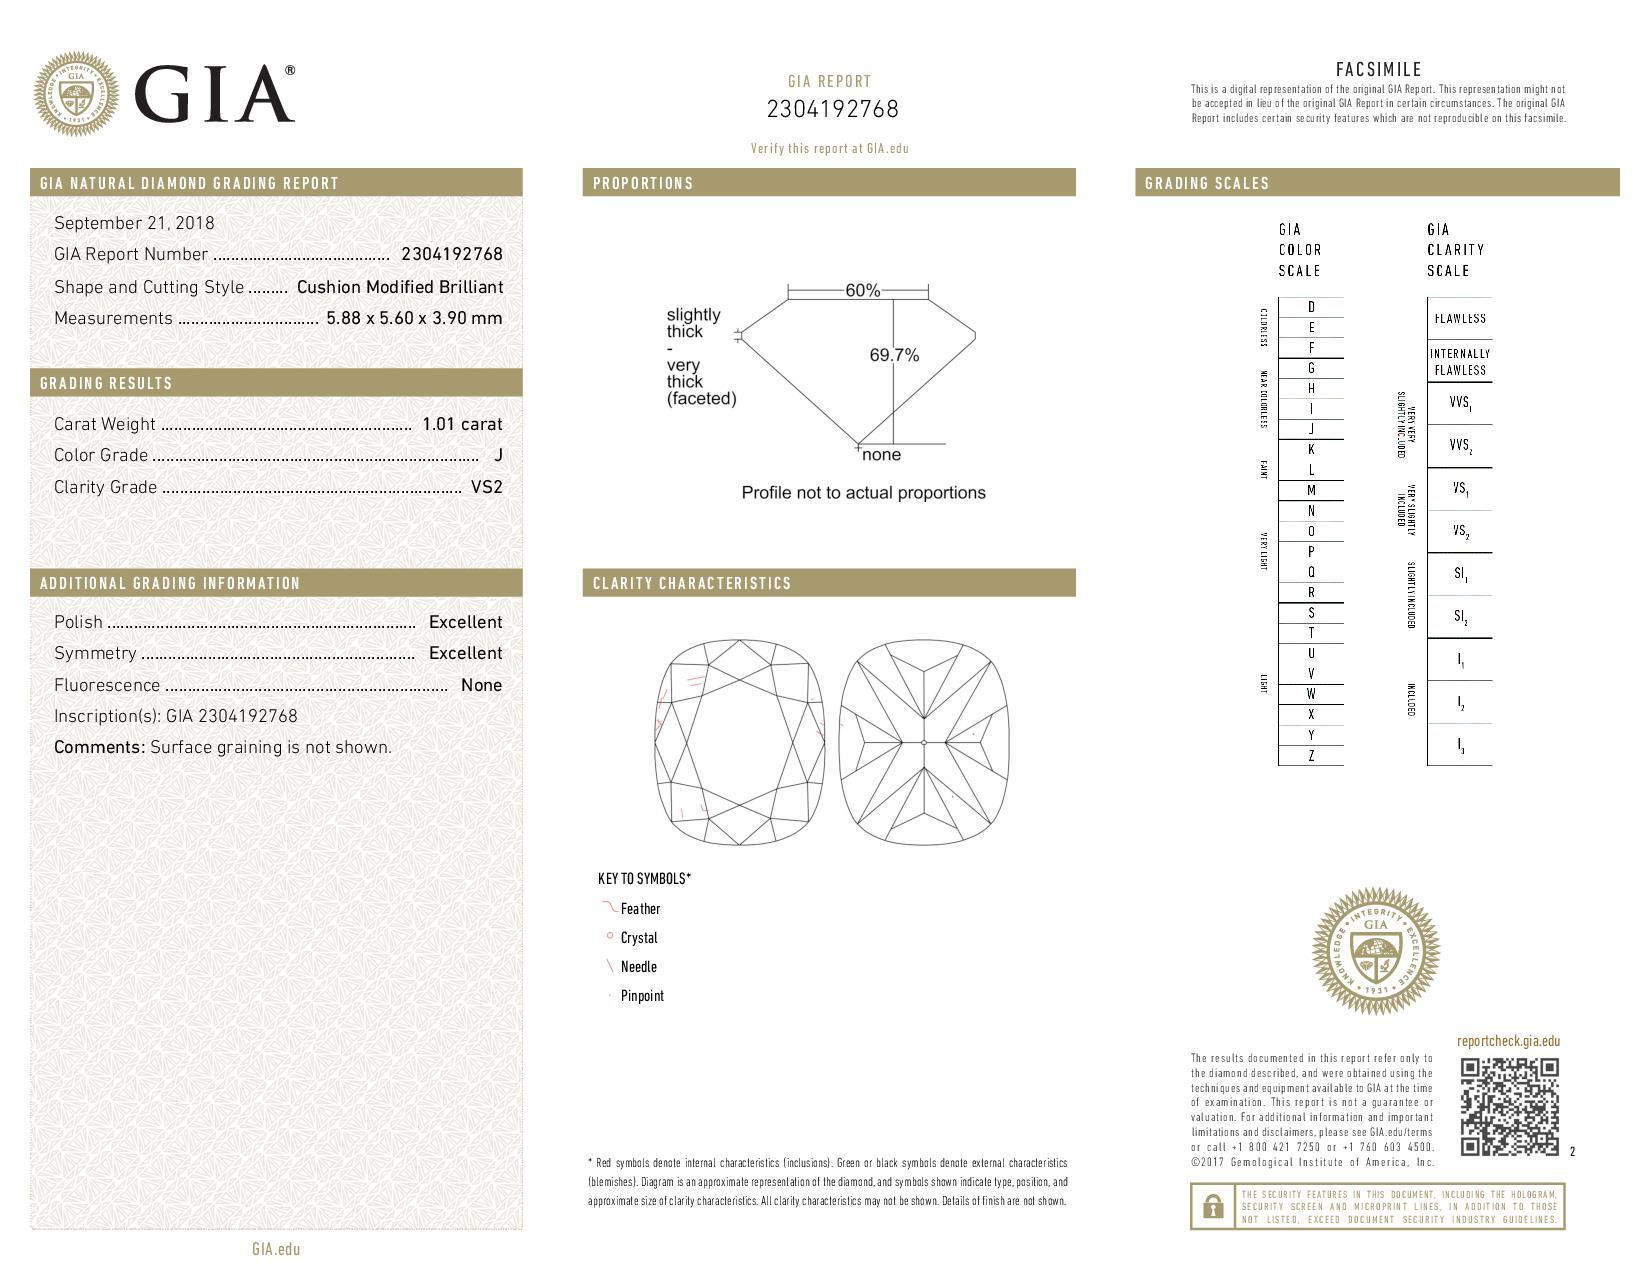 This is a 1.01 carat cushion shape, J color, VS2 clarity natural diamond accompanied by a GIA grading report.